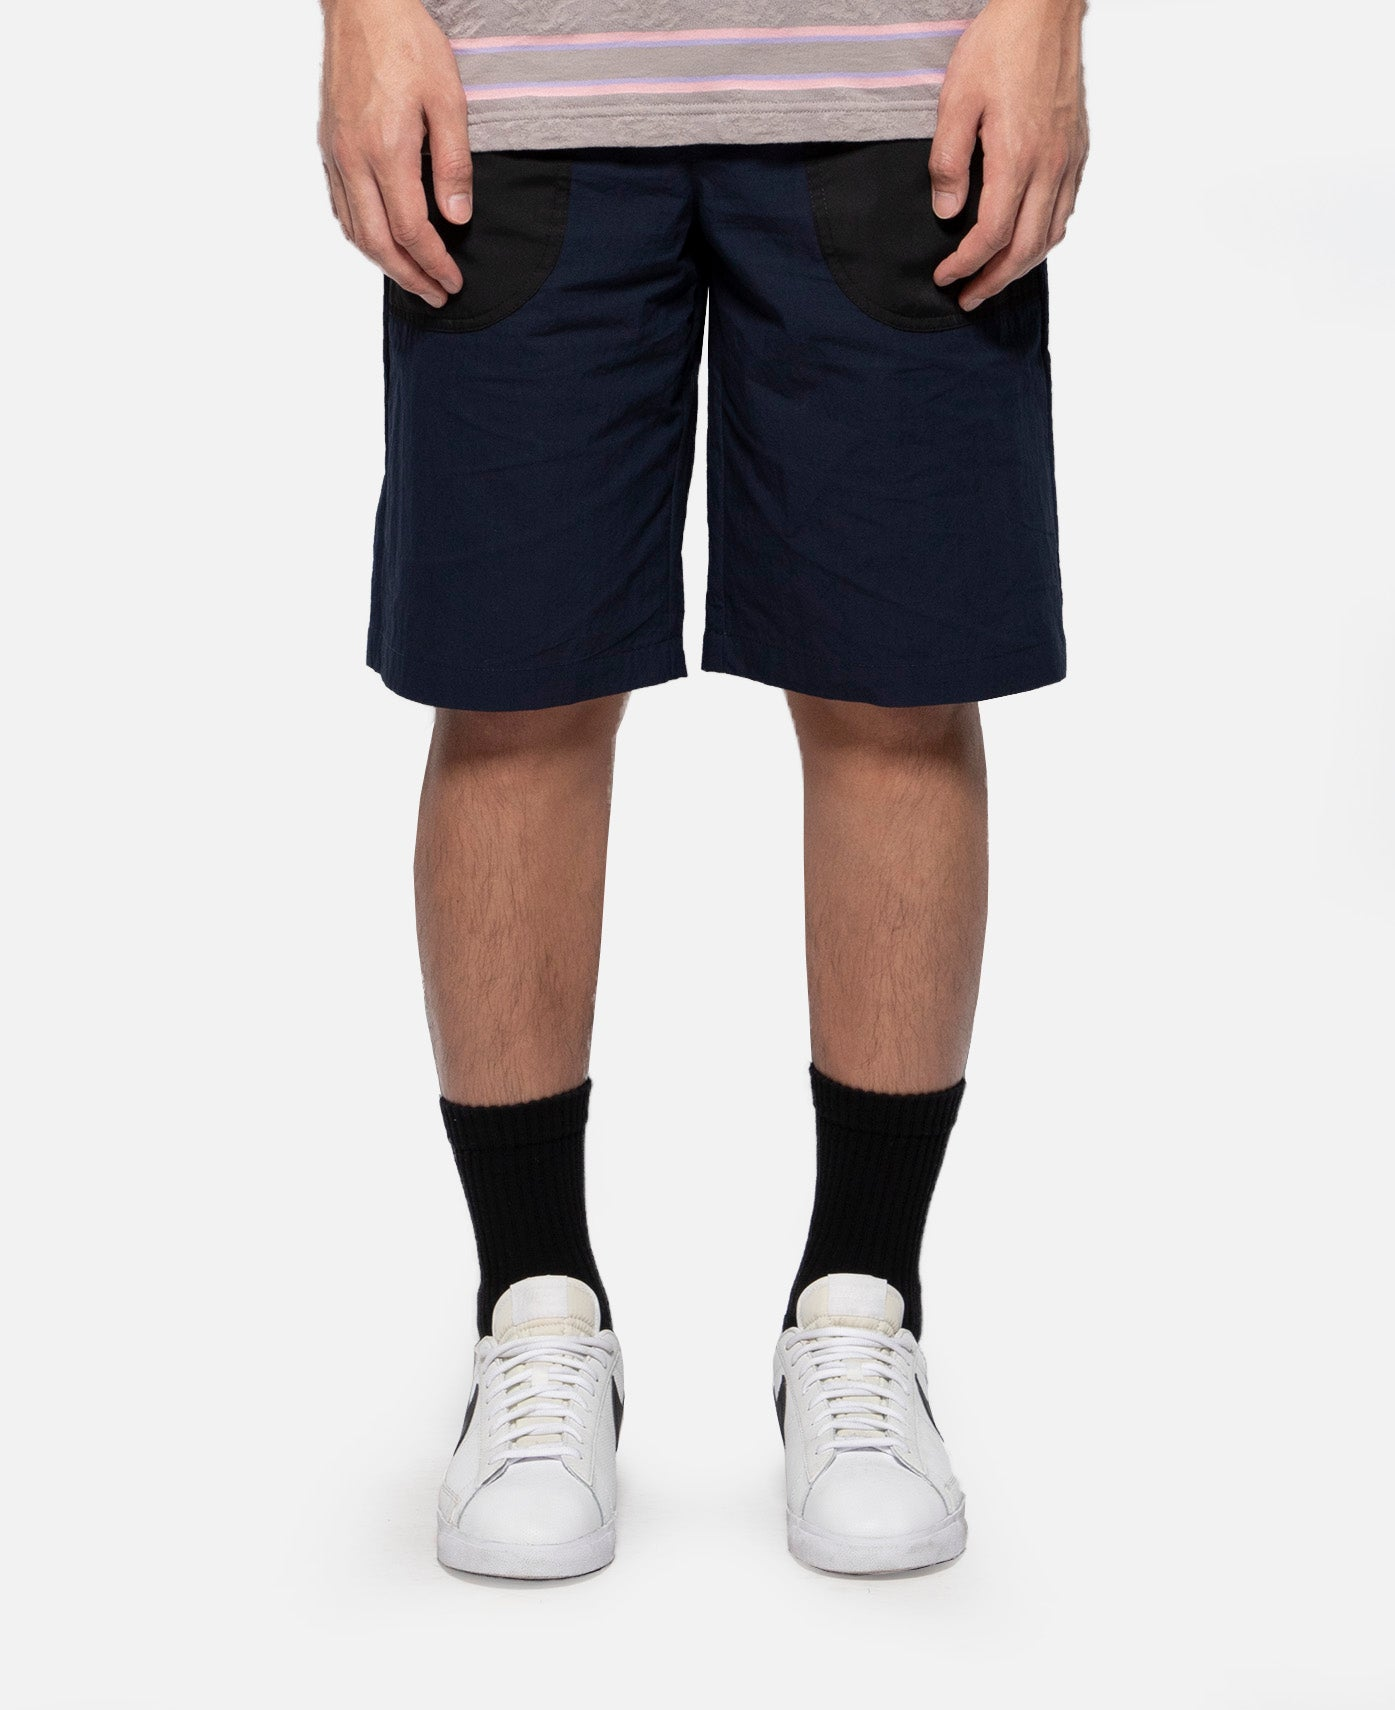 Iso Drawstring Shorts (Navy)